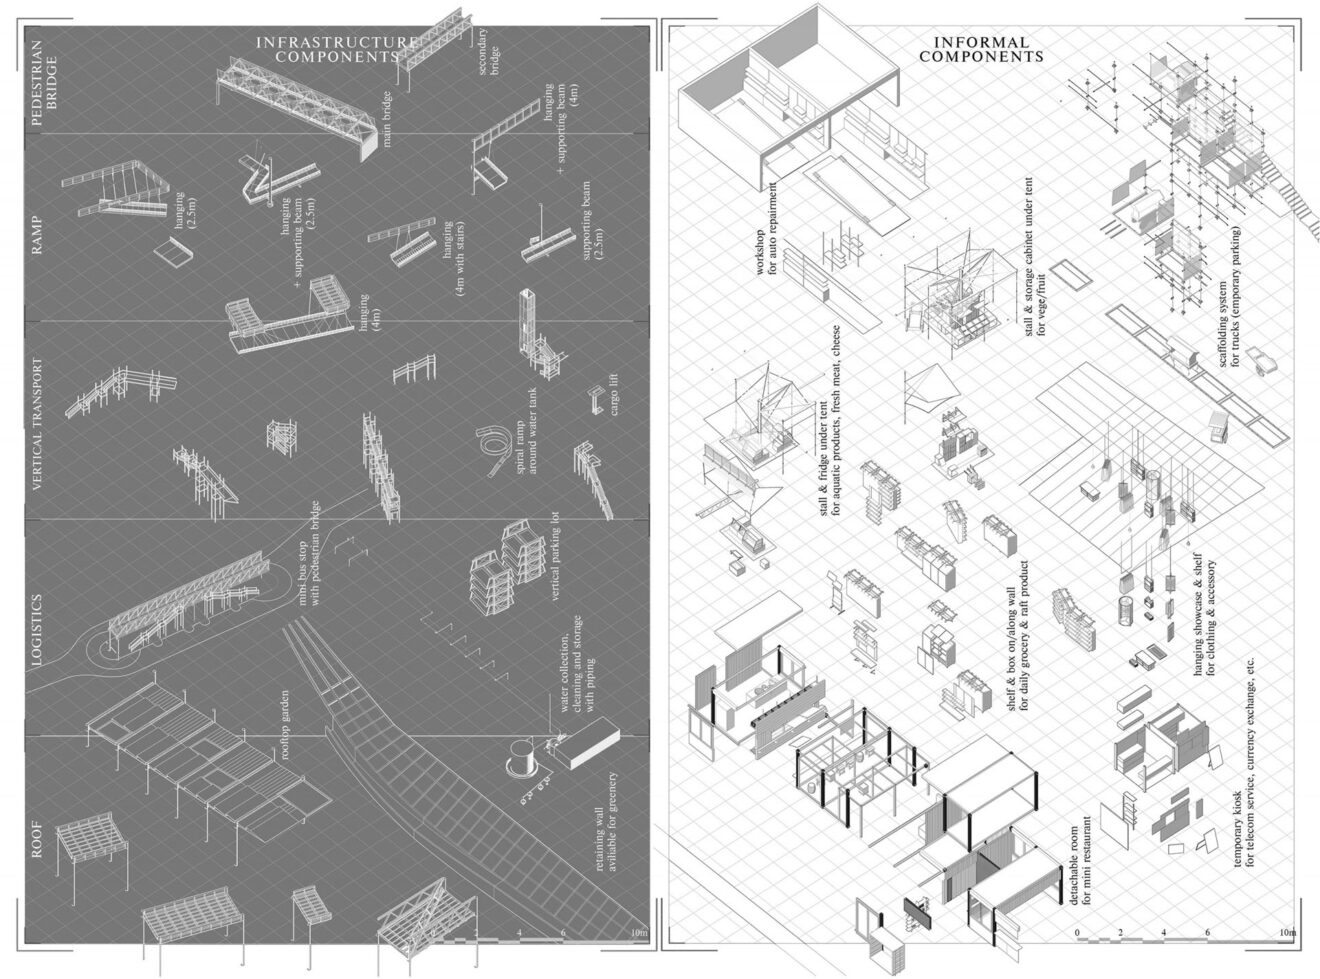 The space of dynamic informality - Jianyun Xu - Archiprix 2020